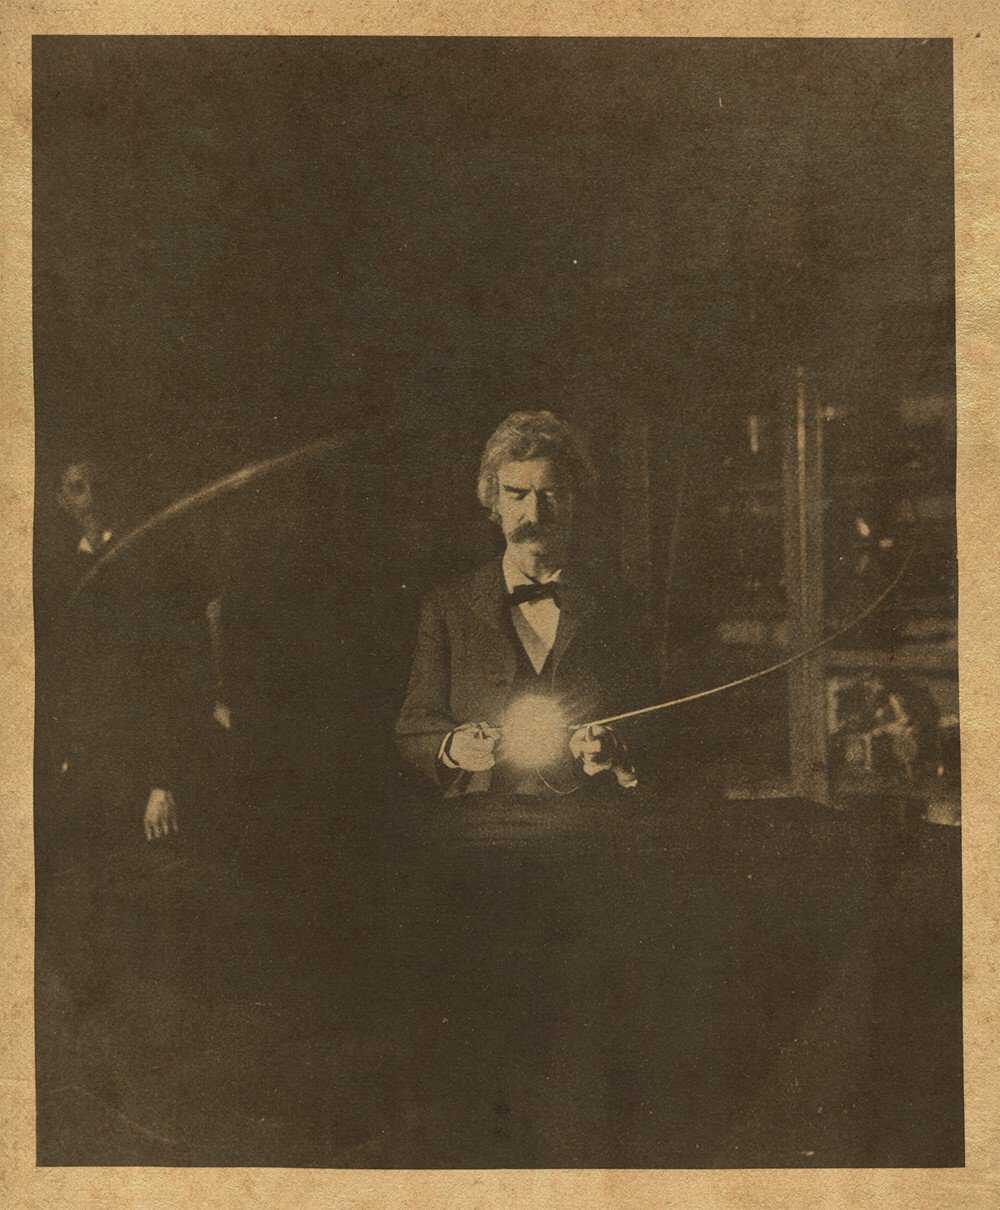 tesla s dinner party american experience official site pbs mark twain was keenly interested in new technologies and ed tesla s laboratory to see the inventor s latest experiments photo tesla science center at